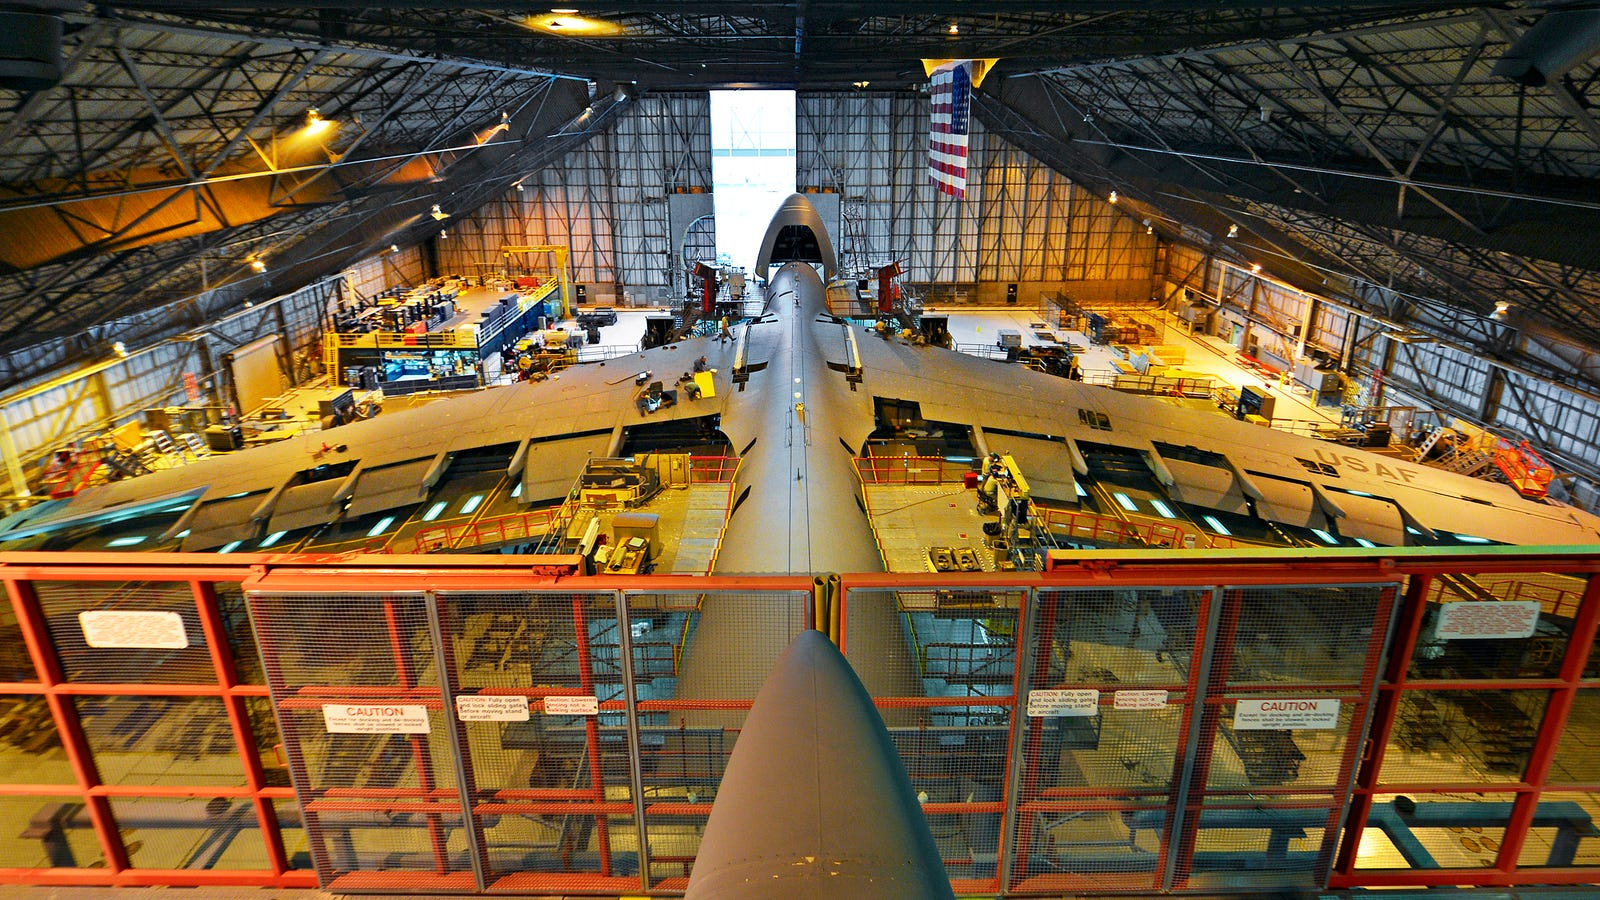 C5 news videos reviews and gossip jalopnik the usafs biggest aircraft the giant c 5 galaxy is not known for its reliability or ease of maintenance although some of these concerns are being vanachro Image collections